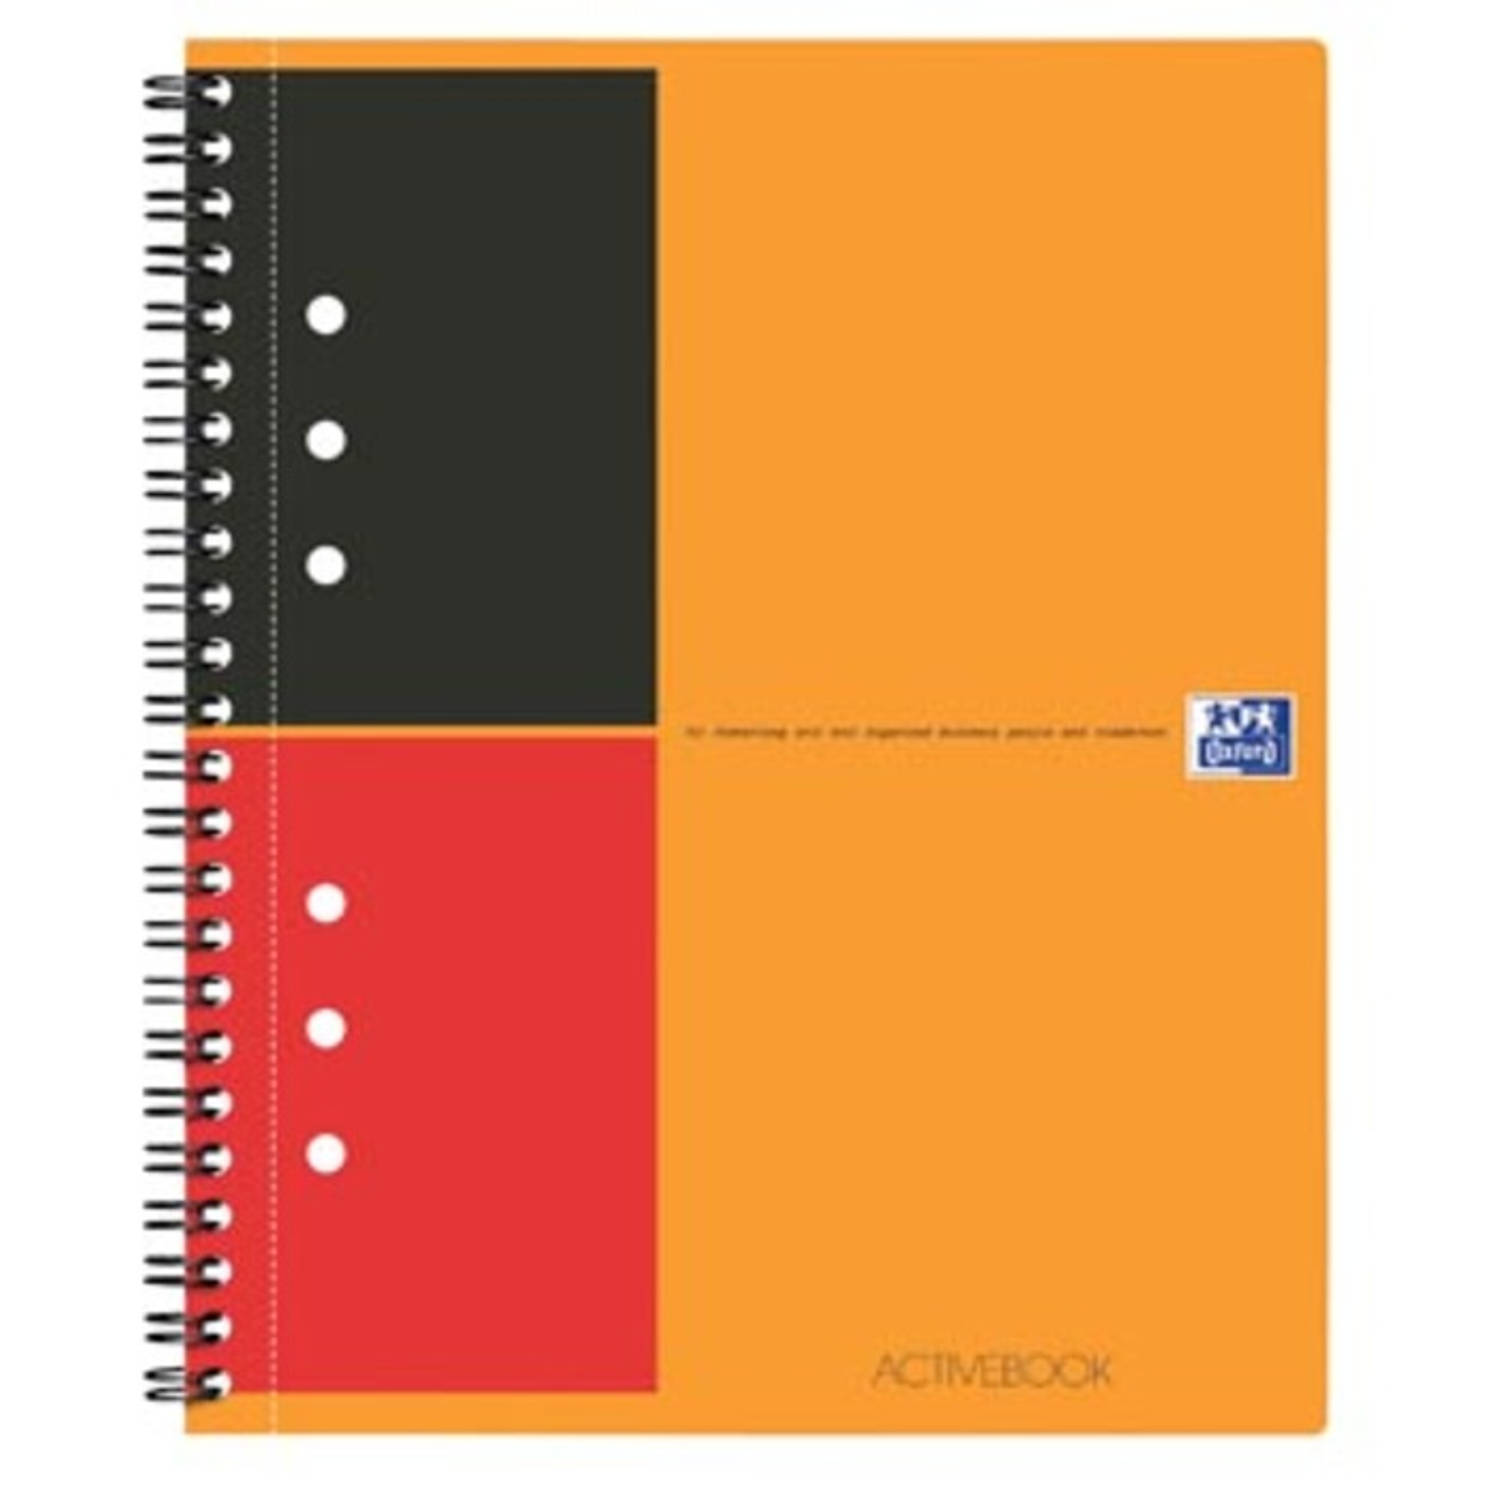 Oxford INTERNATIONAL Activebook, 160 bladzijden, ft A5+, gelijnd